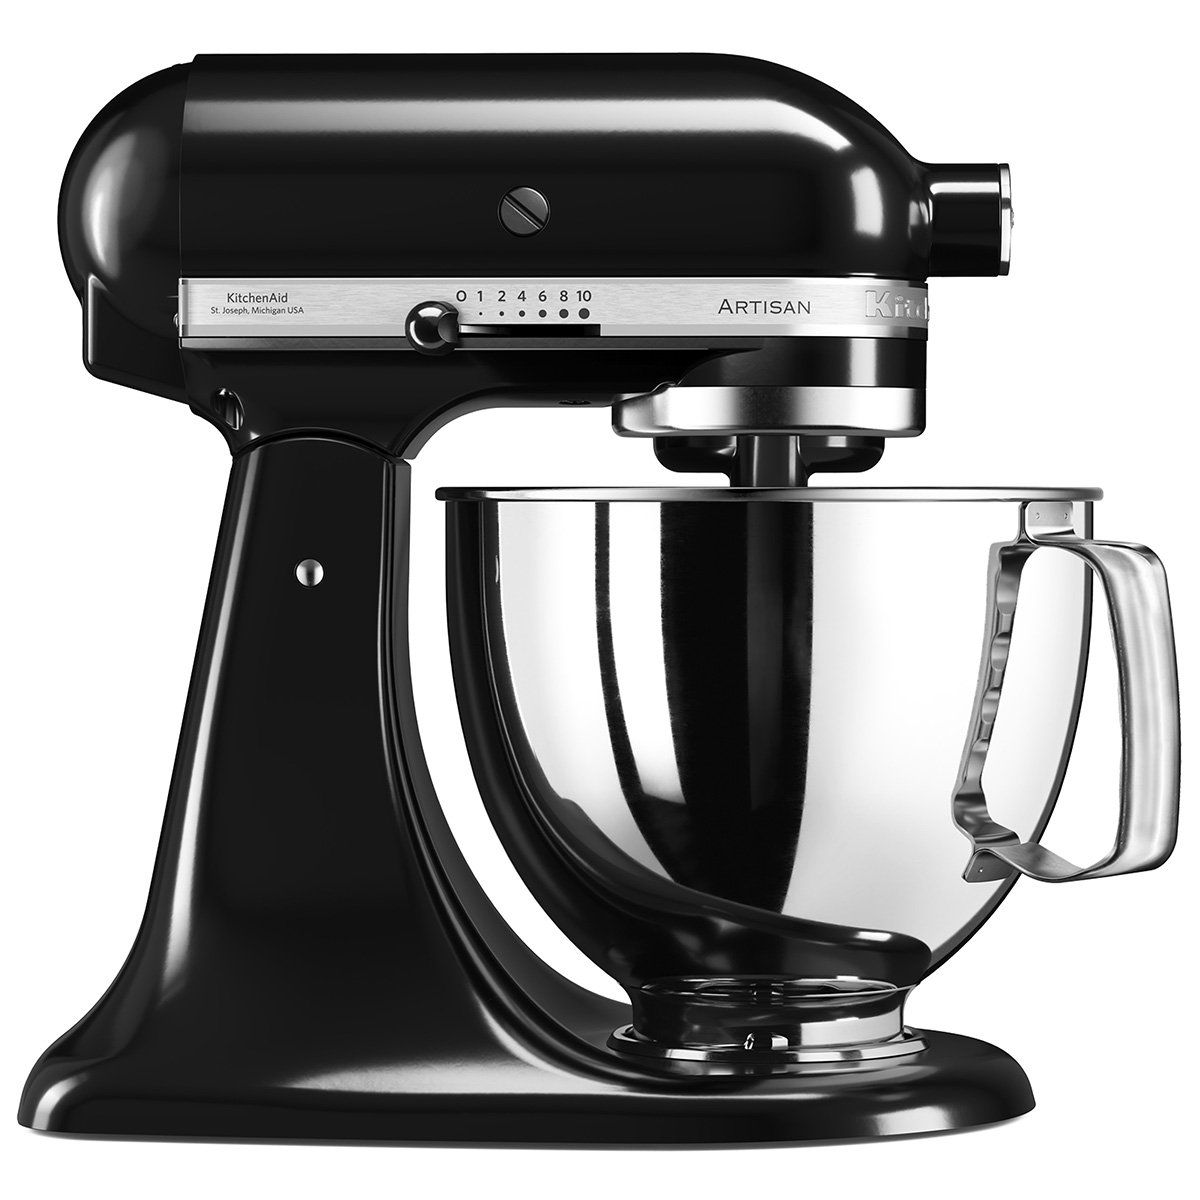 Image of   KitchenAid køkkenmaskine - Artisan - Sort